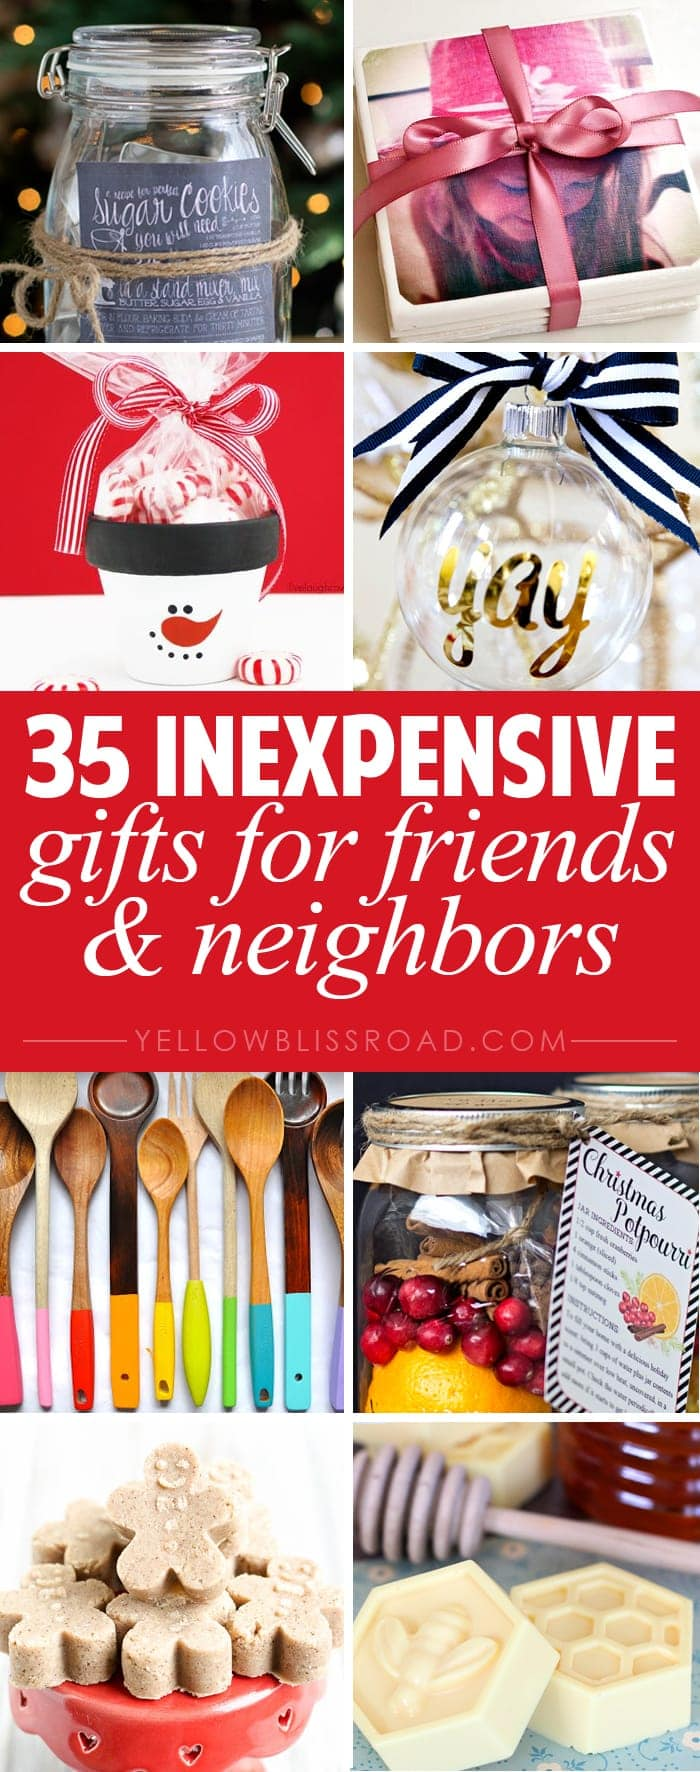 Christmas on a budget gifts ideas